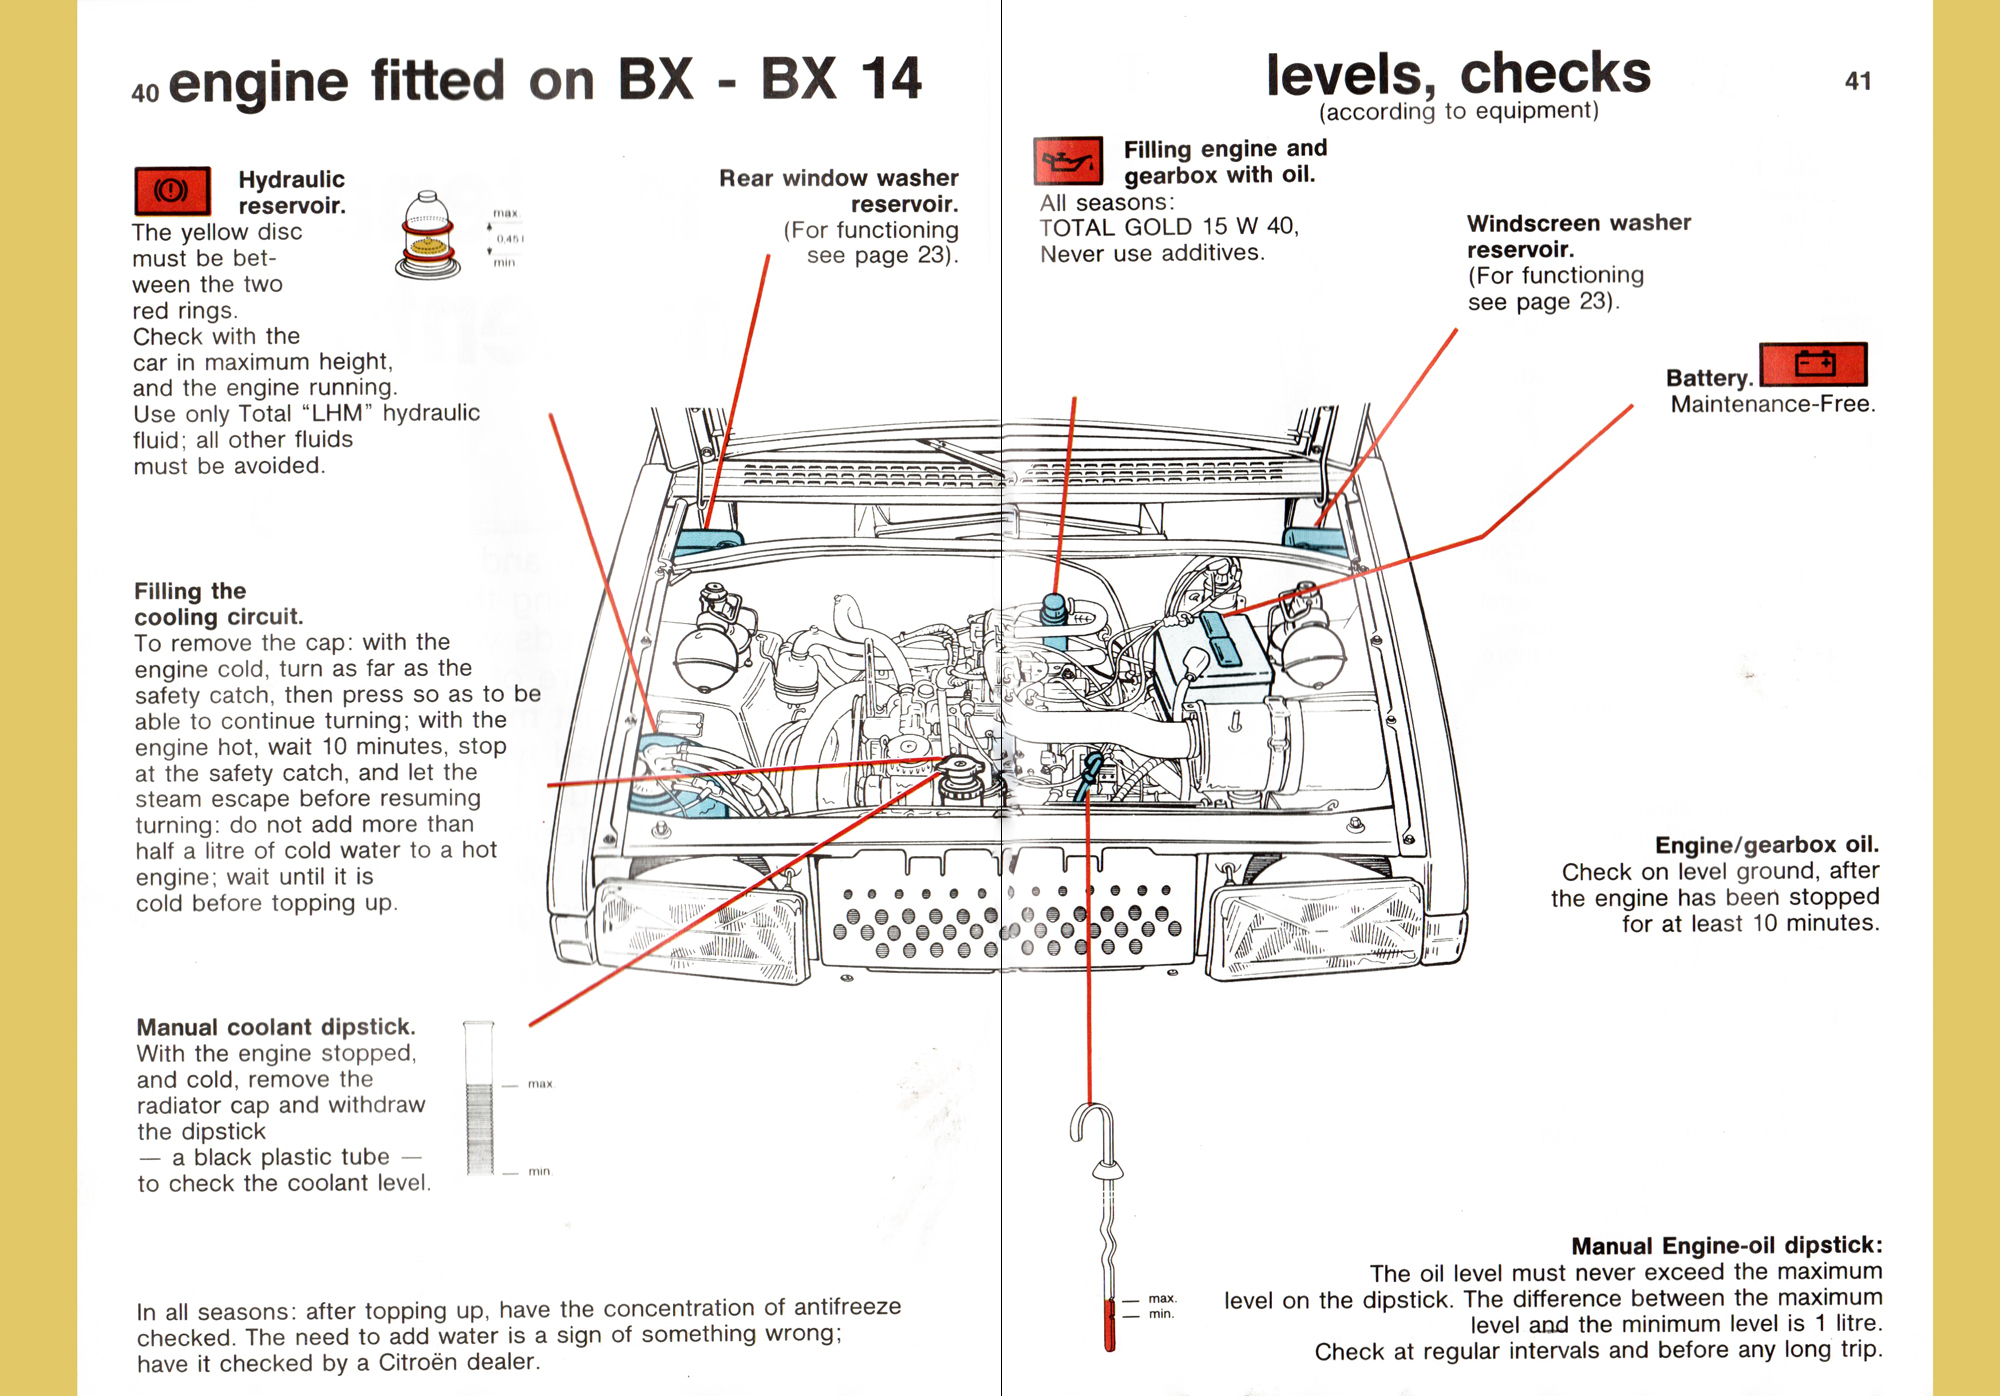 2011 Hyundai Sonata Fuse Layout Download Wiring Diagrams Box Exciting Mins Engine Oiling Diagram Photos Best Image Description